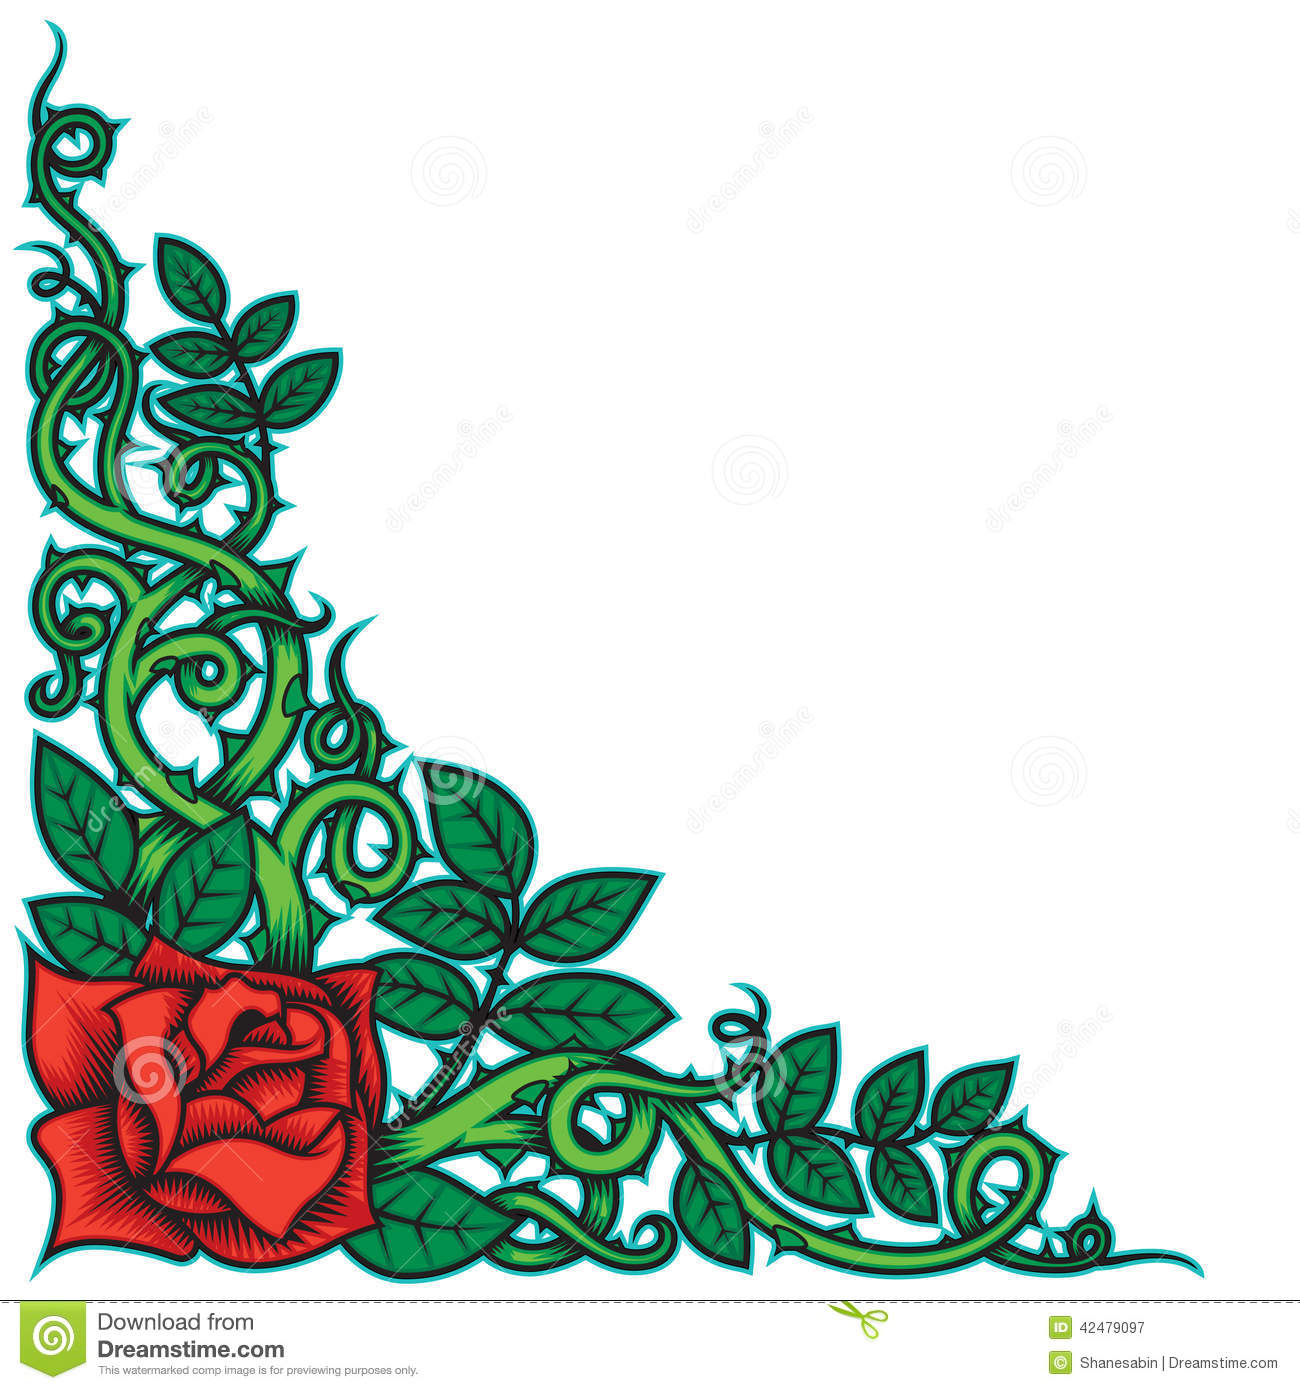 Rose And Thorns Border Stock Vector - Image: 42479097